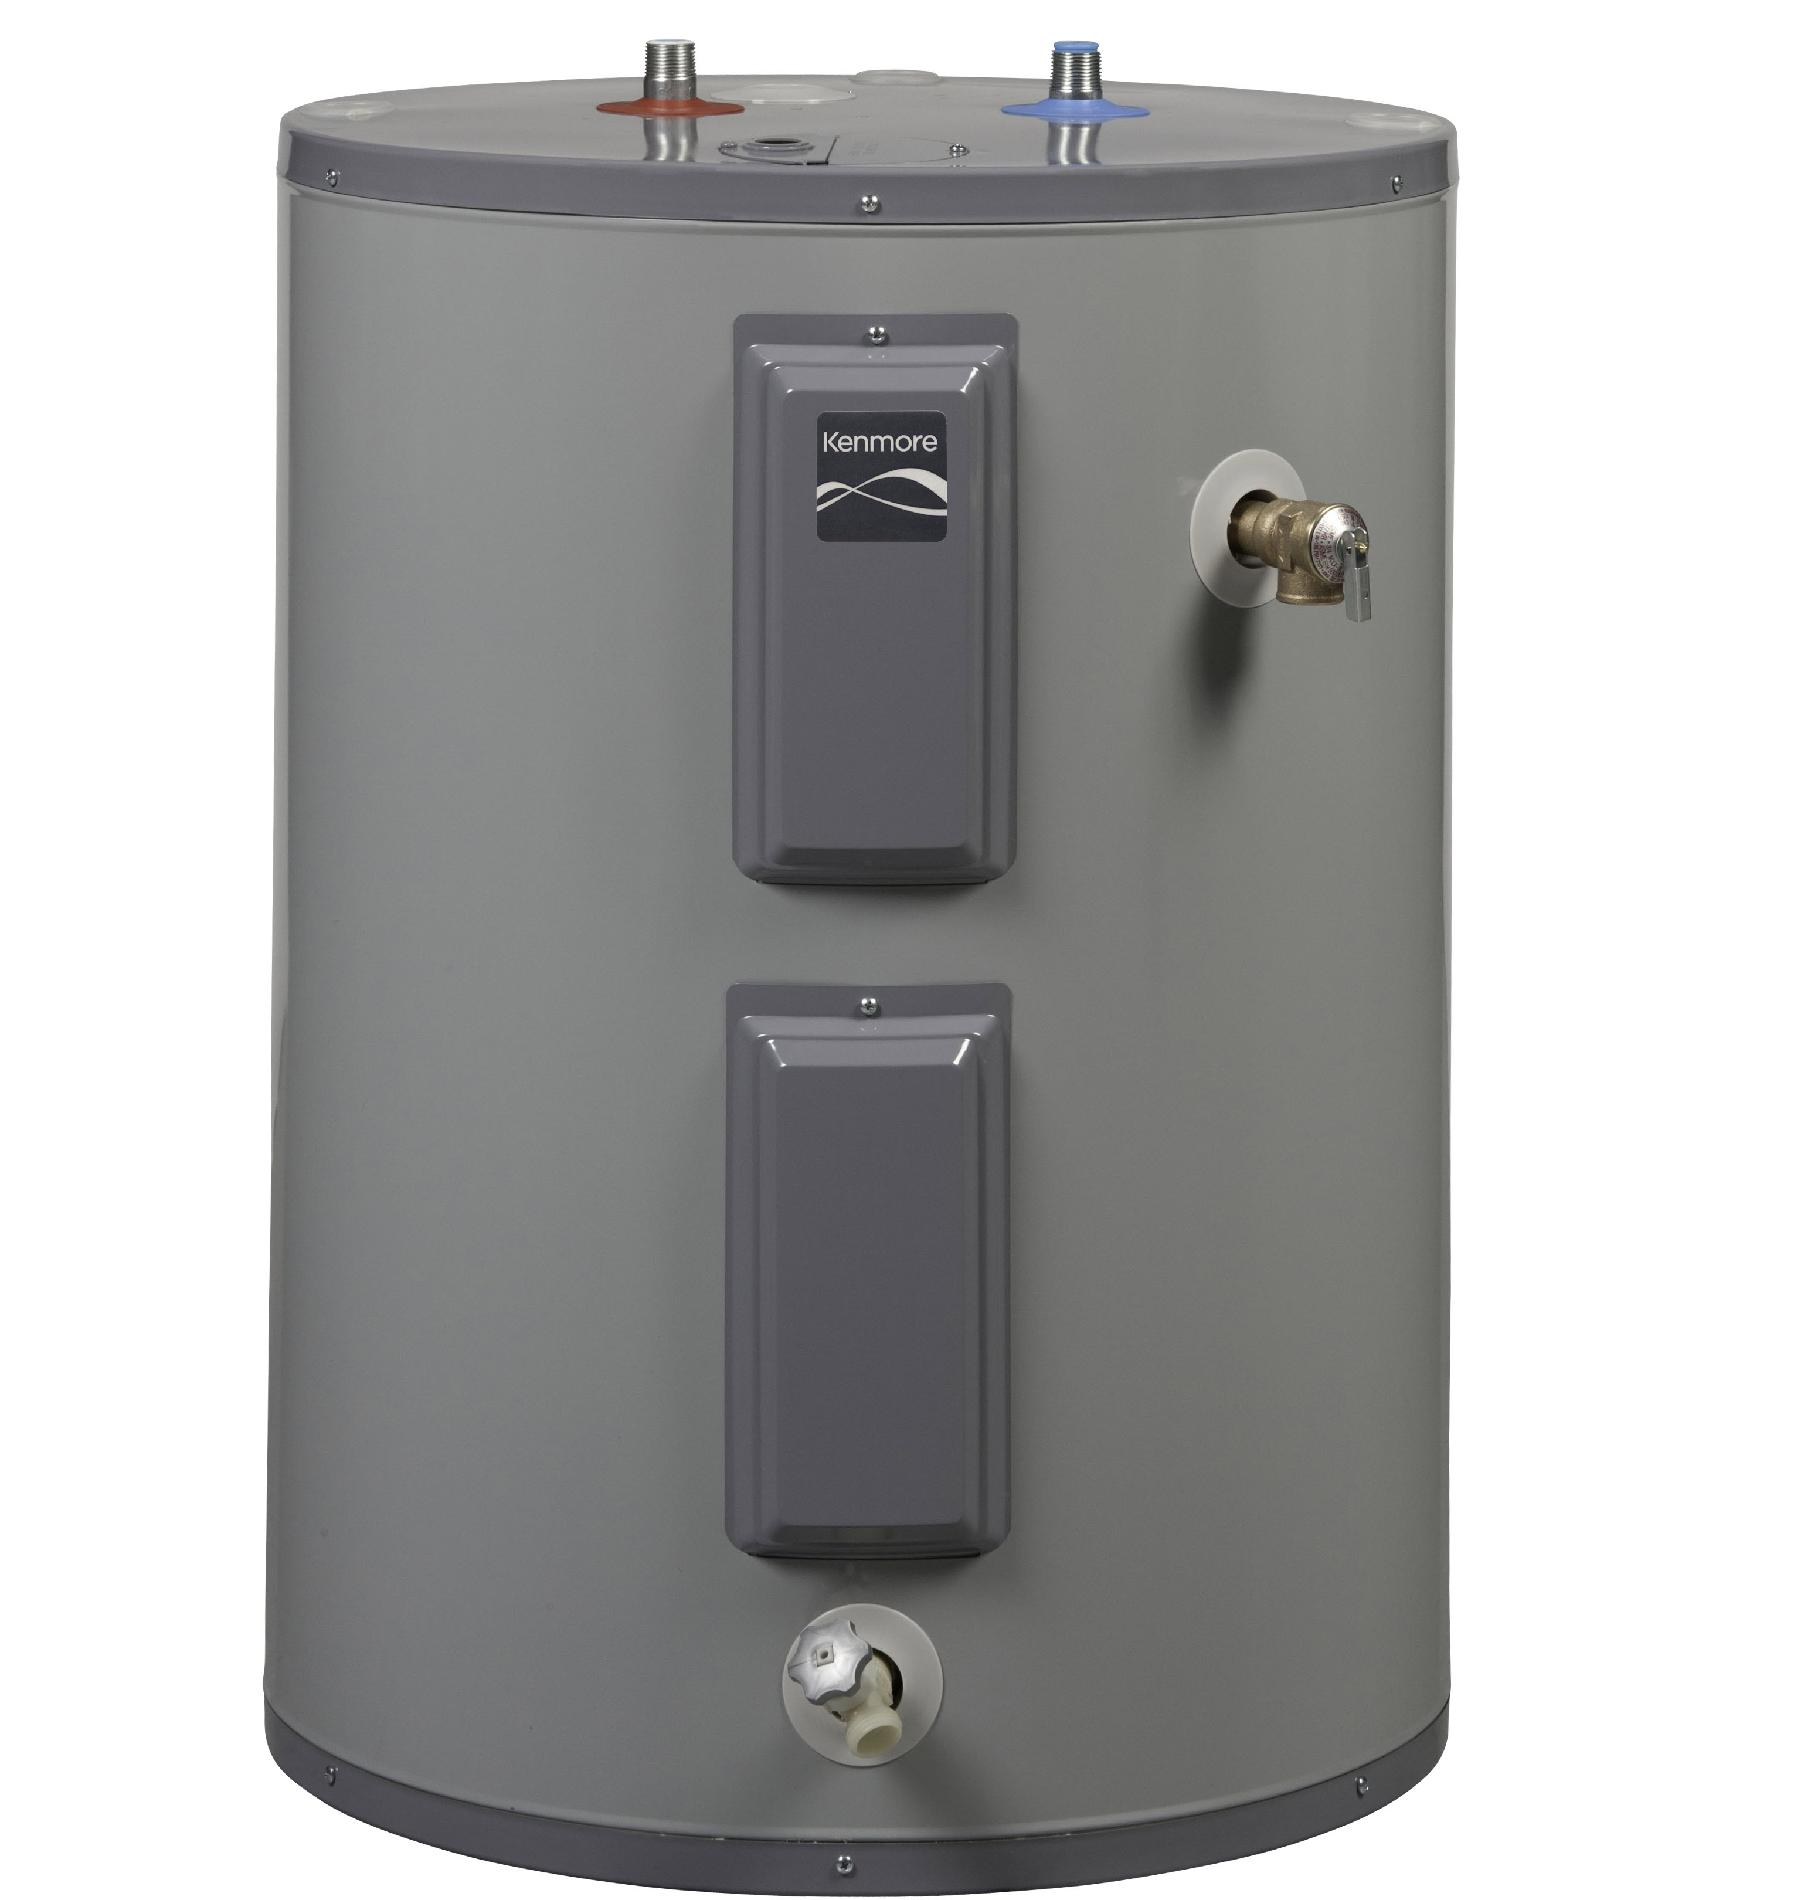 Kenmore 38 gal. Short 9-Year Electric Water Heater